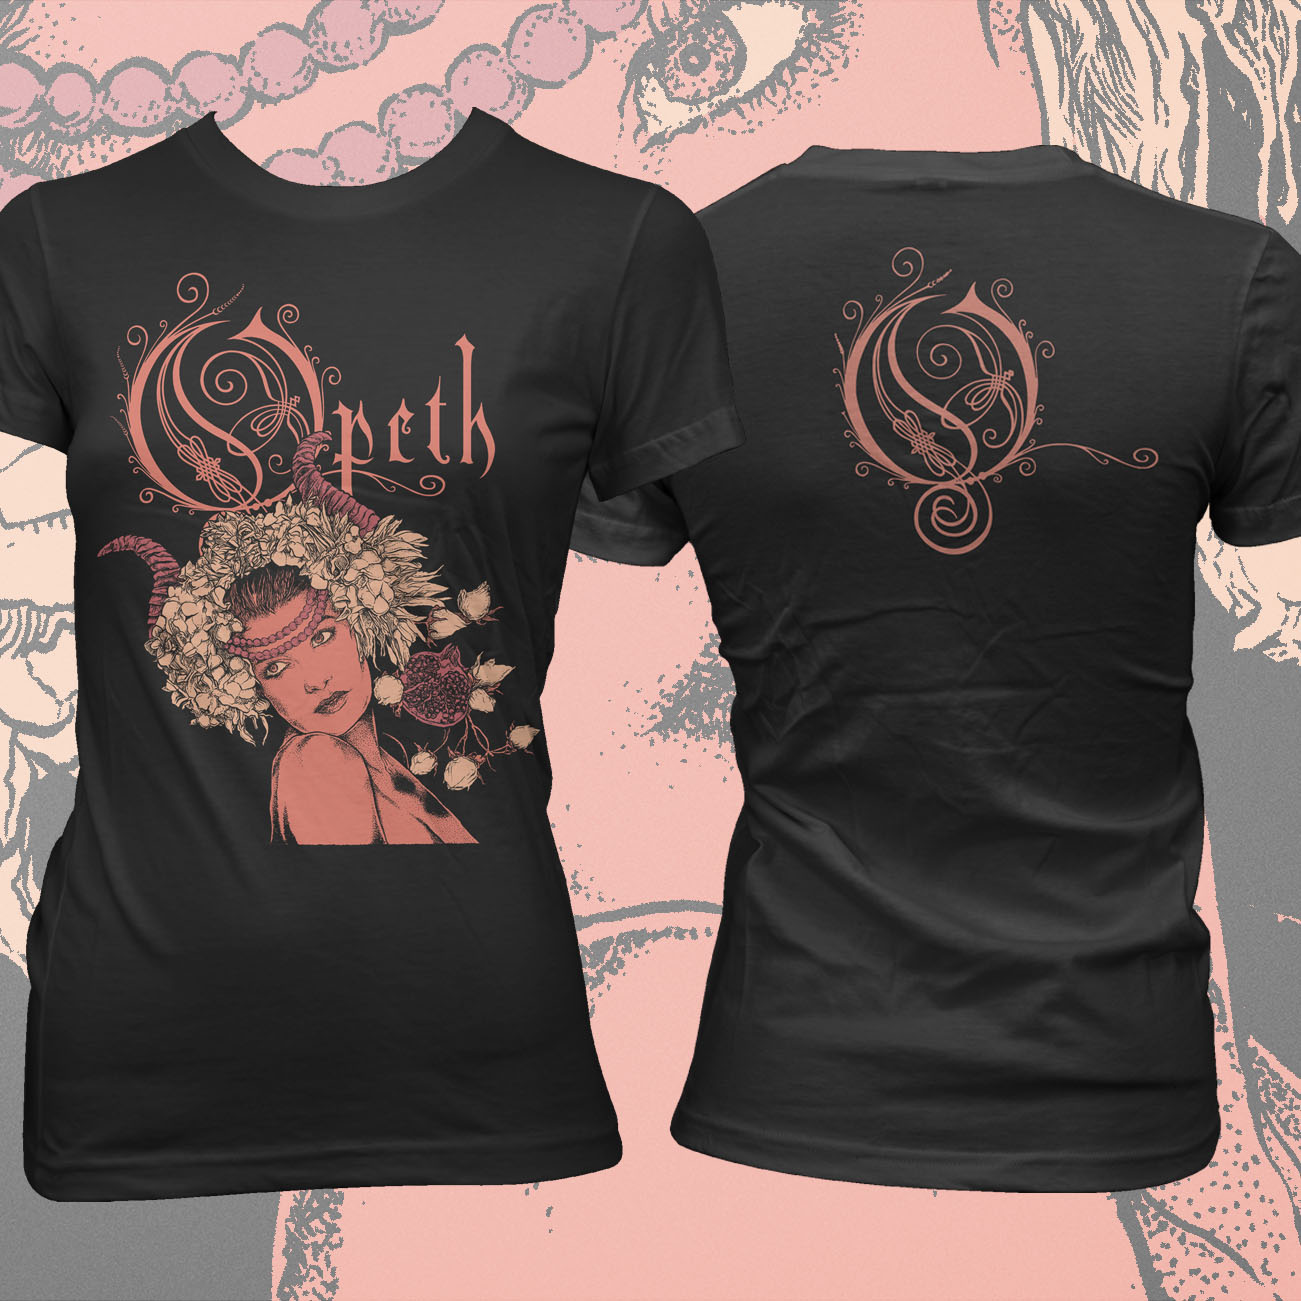 Opeth - Persephone Fitted T-Shirt - Opeth